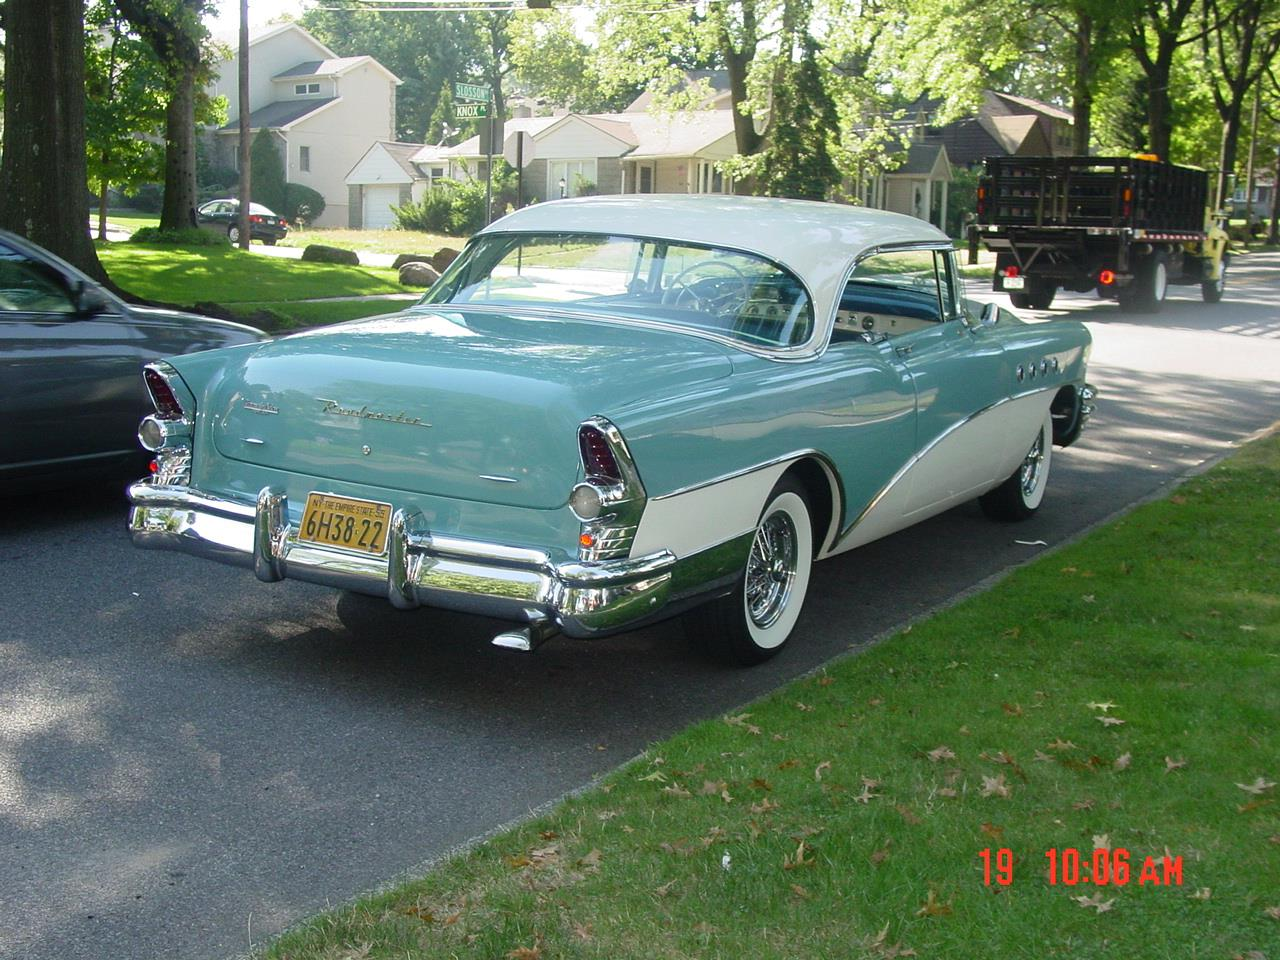 1955 Buick Roadmaster for sale in STATEN ISLAND, NY – photo 2